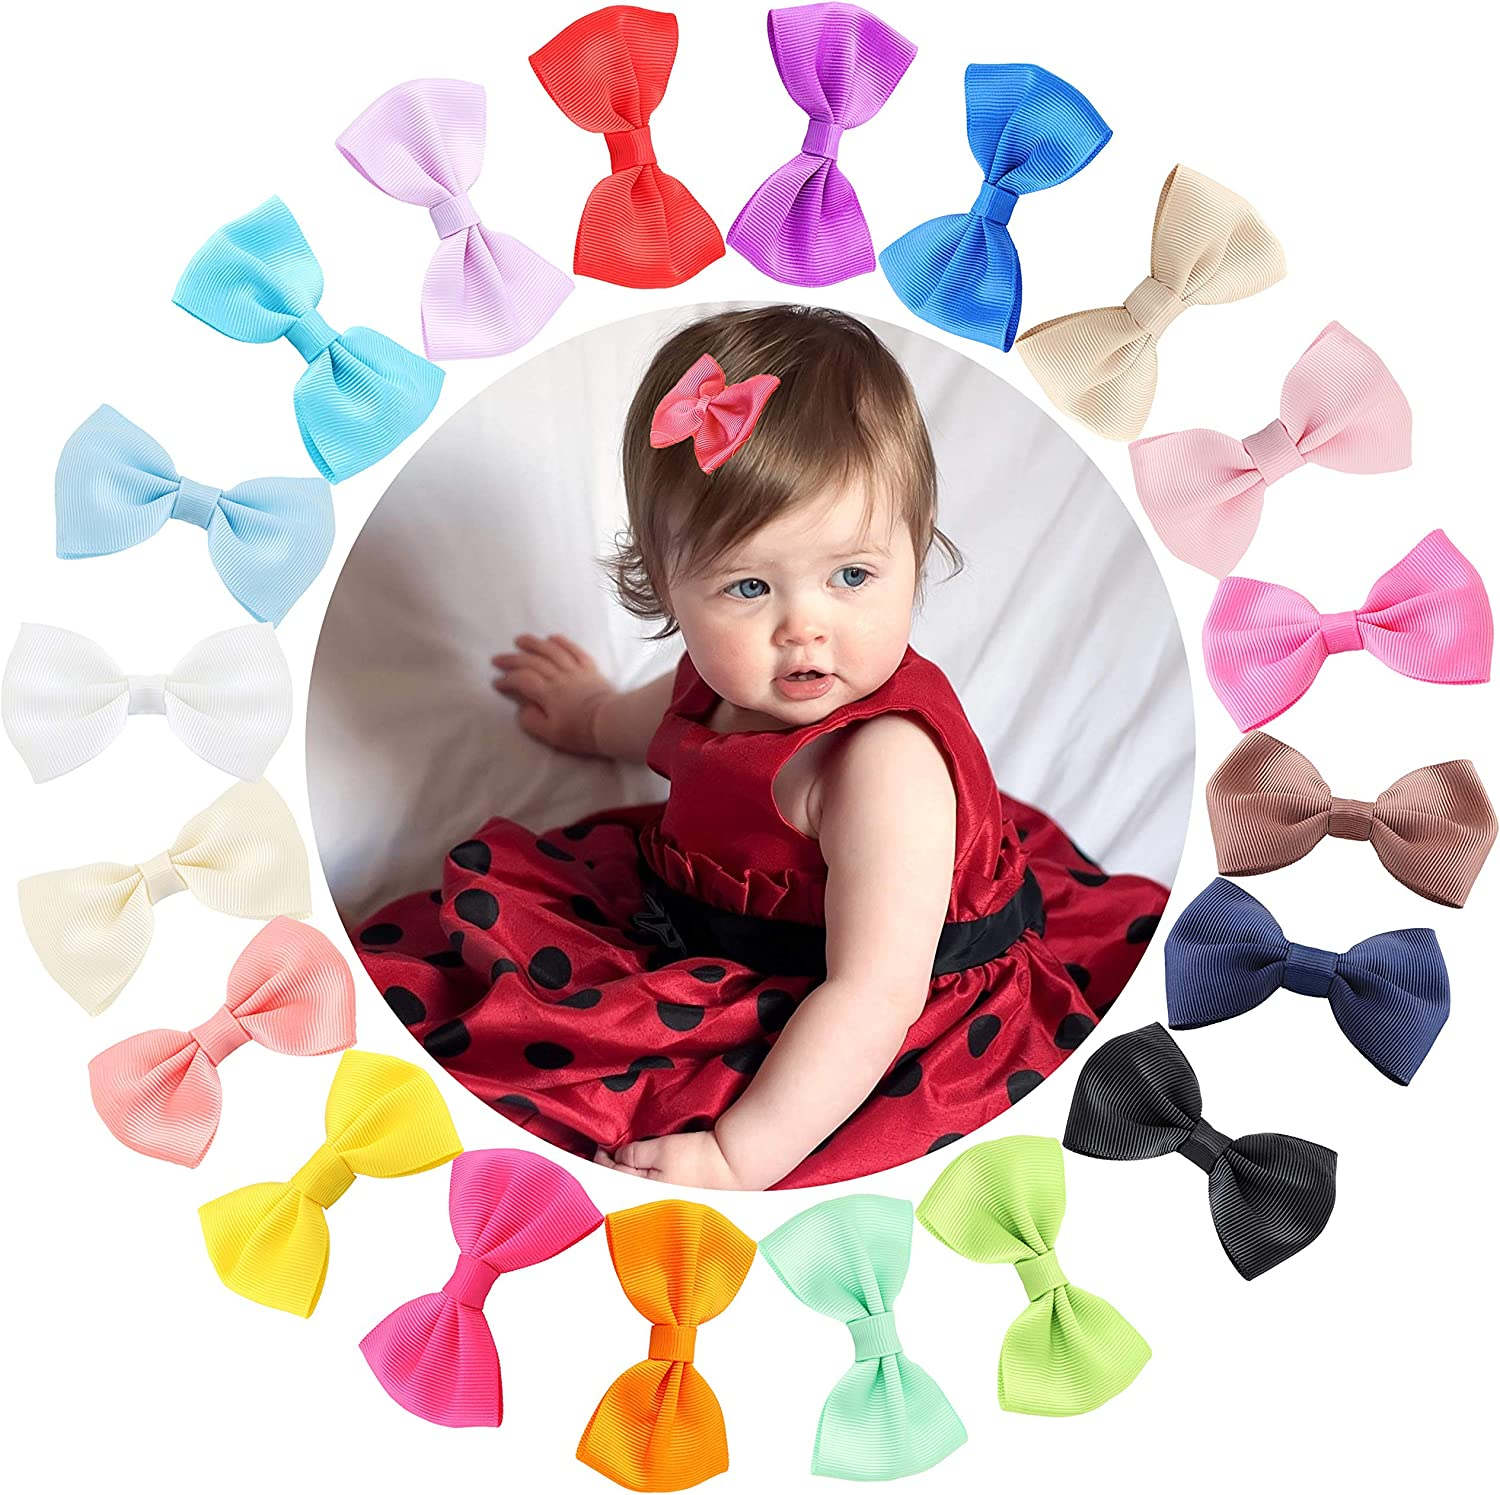 Adramata 20Pcs 3 in Mini Hair Bows Clip Baby Girls Boutique Grosgrain Ribbon Pinwheel Hair Bows with Alligator Clips Barrettes for Girl Teens Kids Babies Toddlers